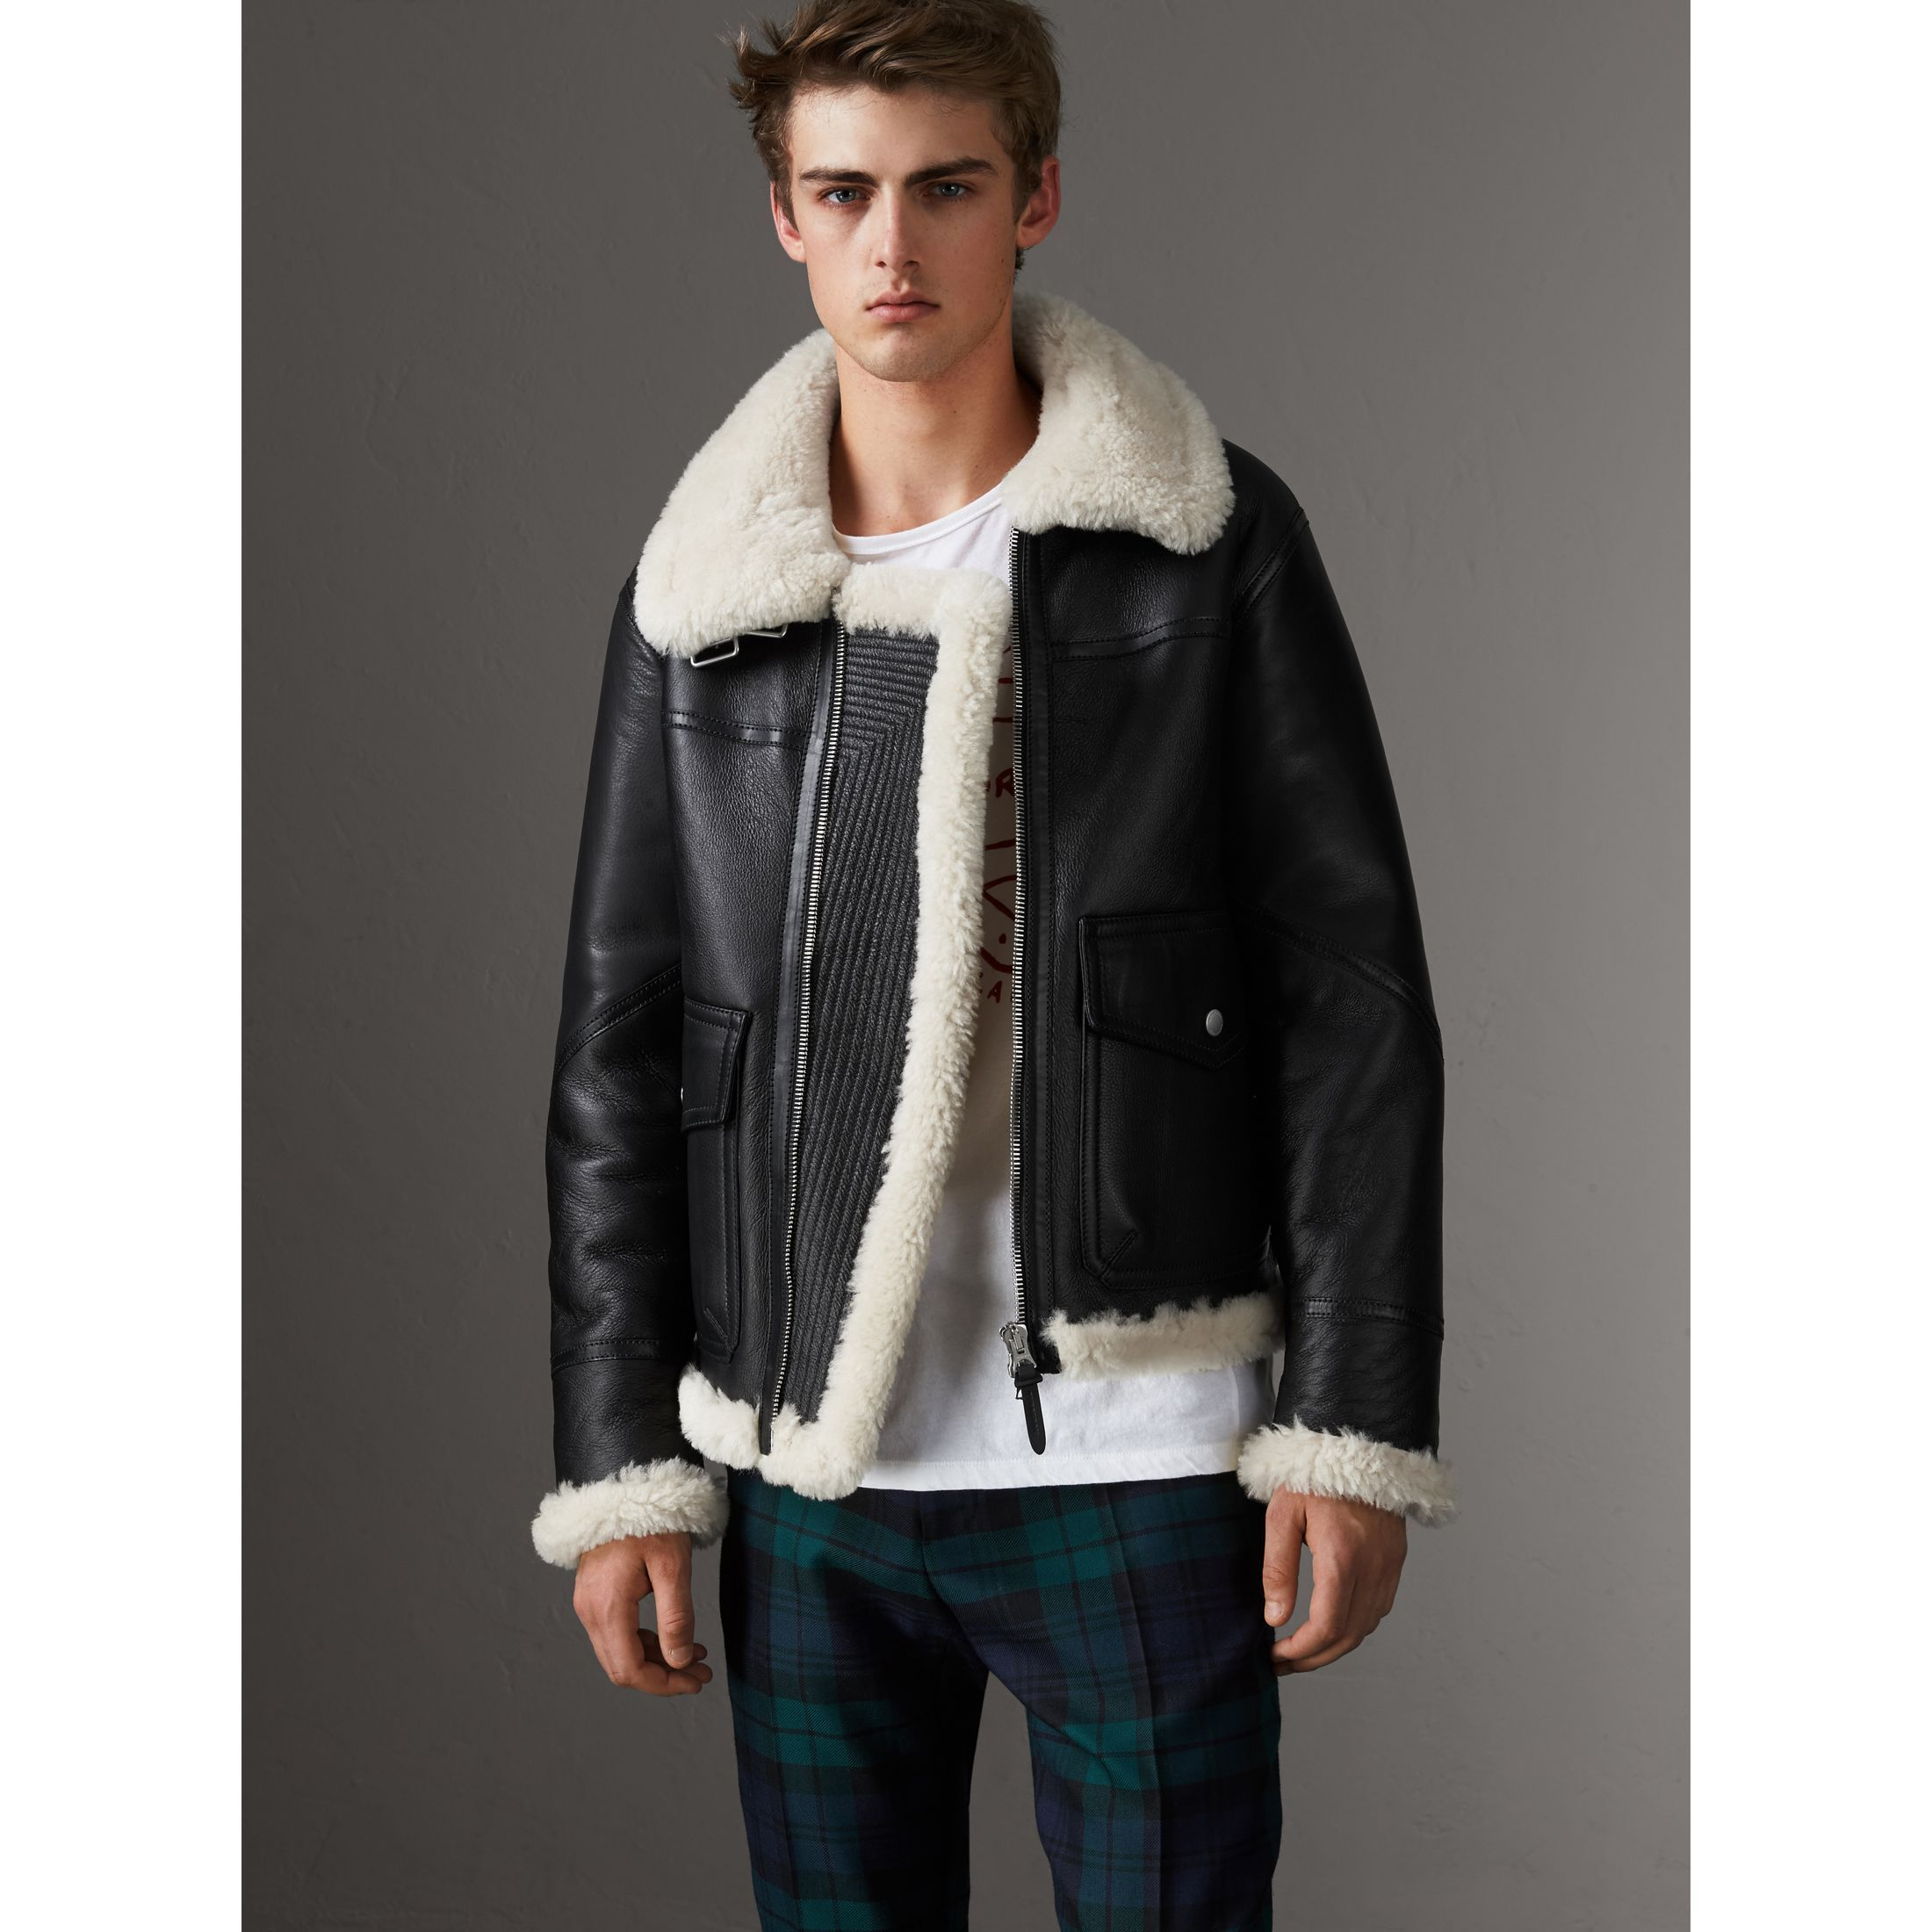 A classic aviator jacket in tactile shearling with a